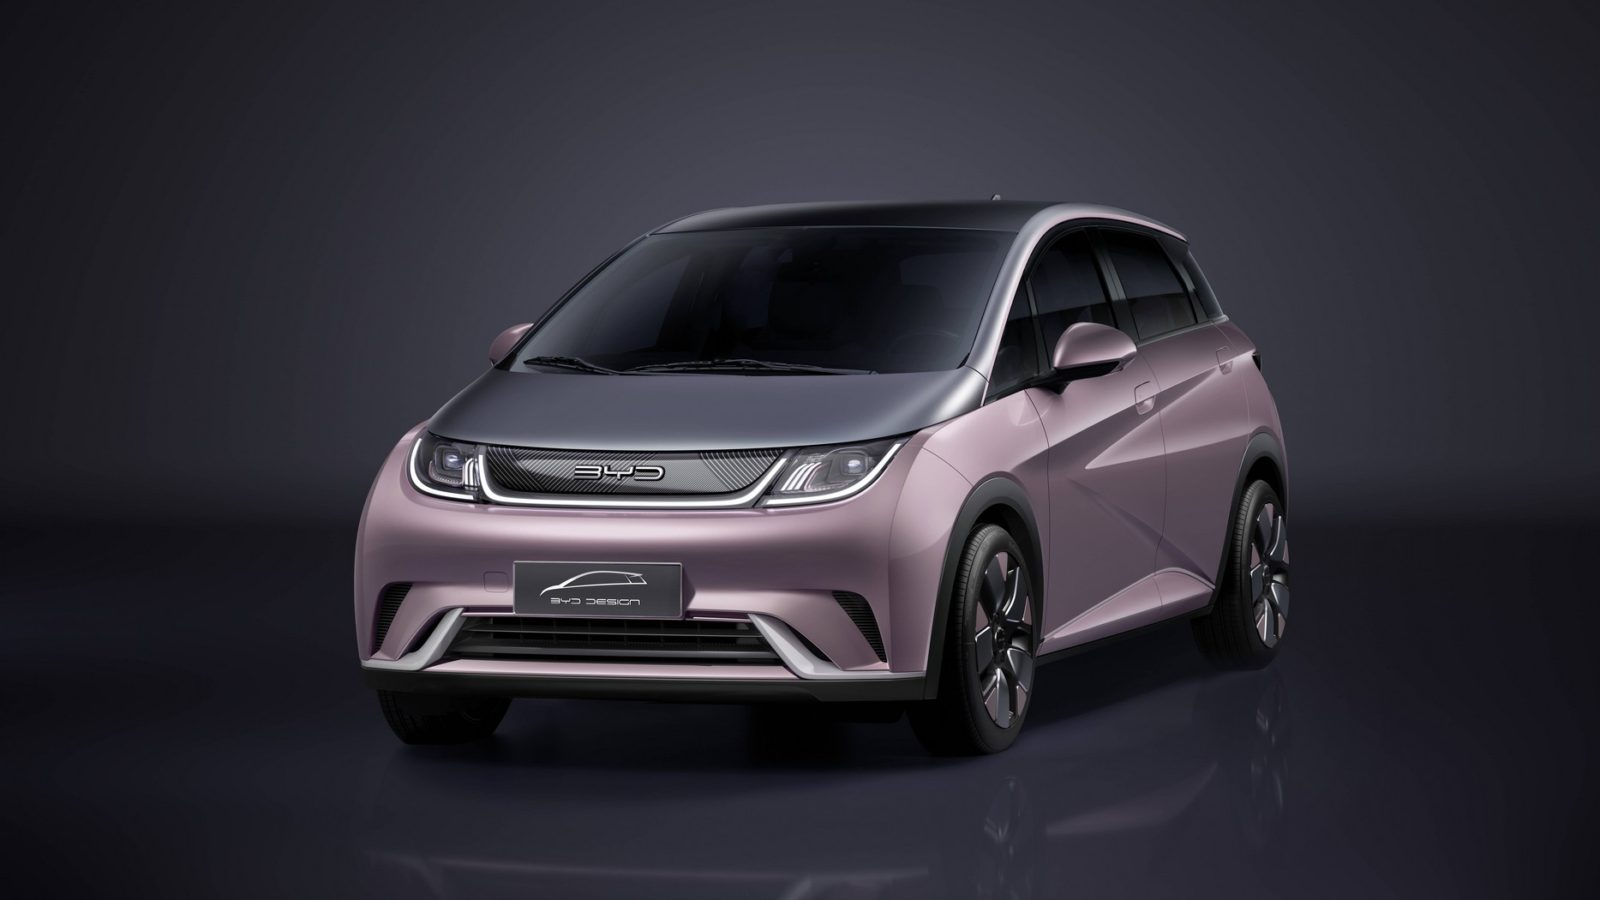 byd-dolphin-evaluation-fails-to-show-why-this-ev-is-a-game-changer